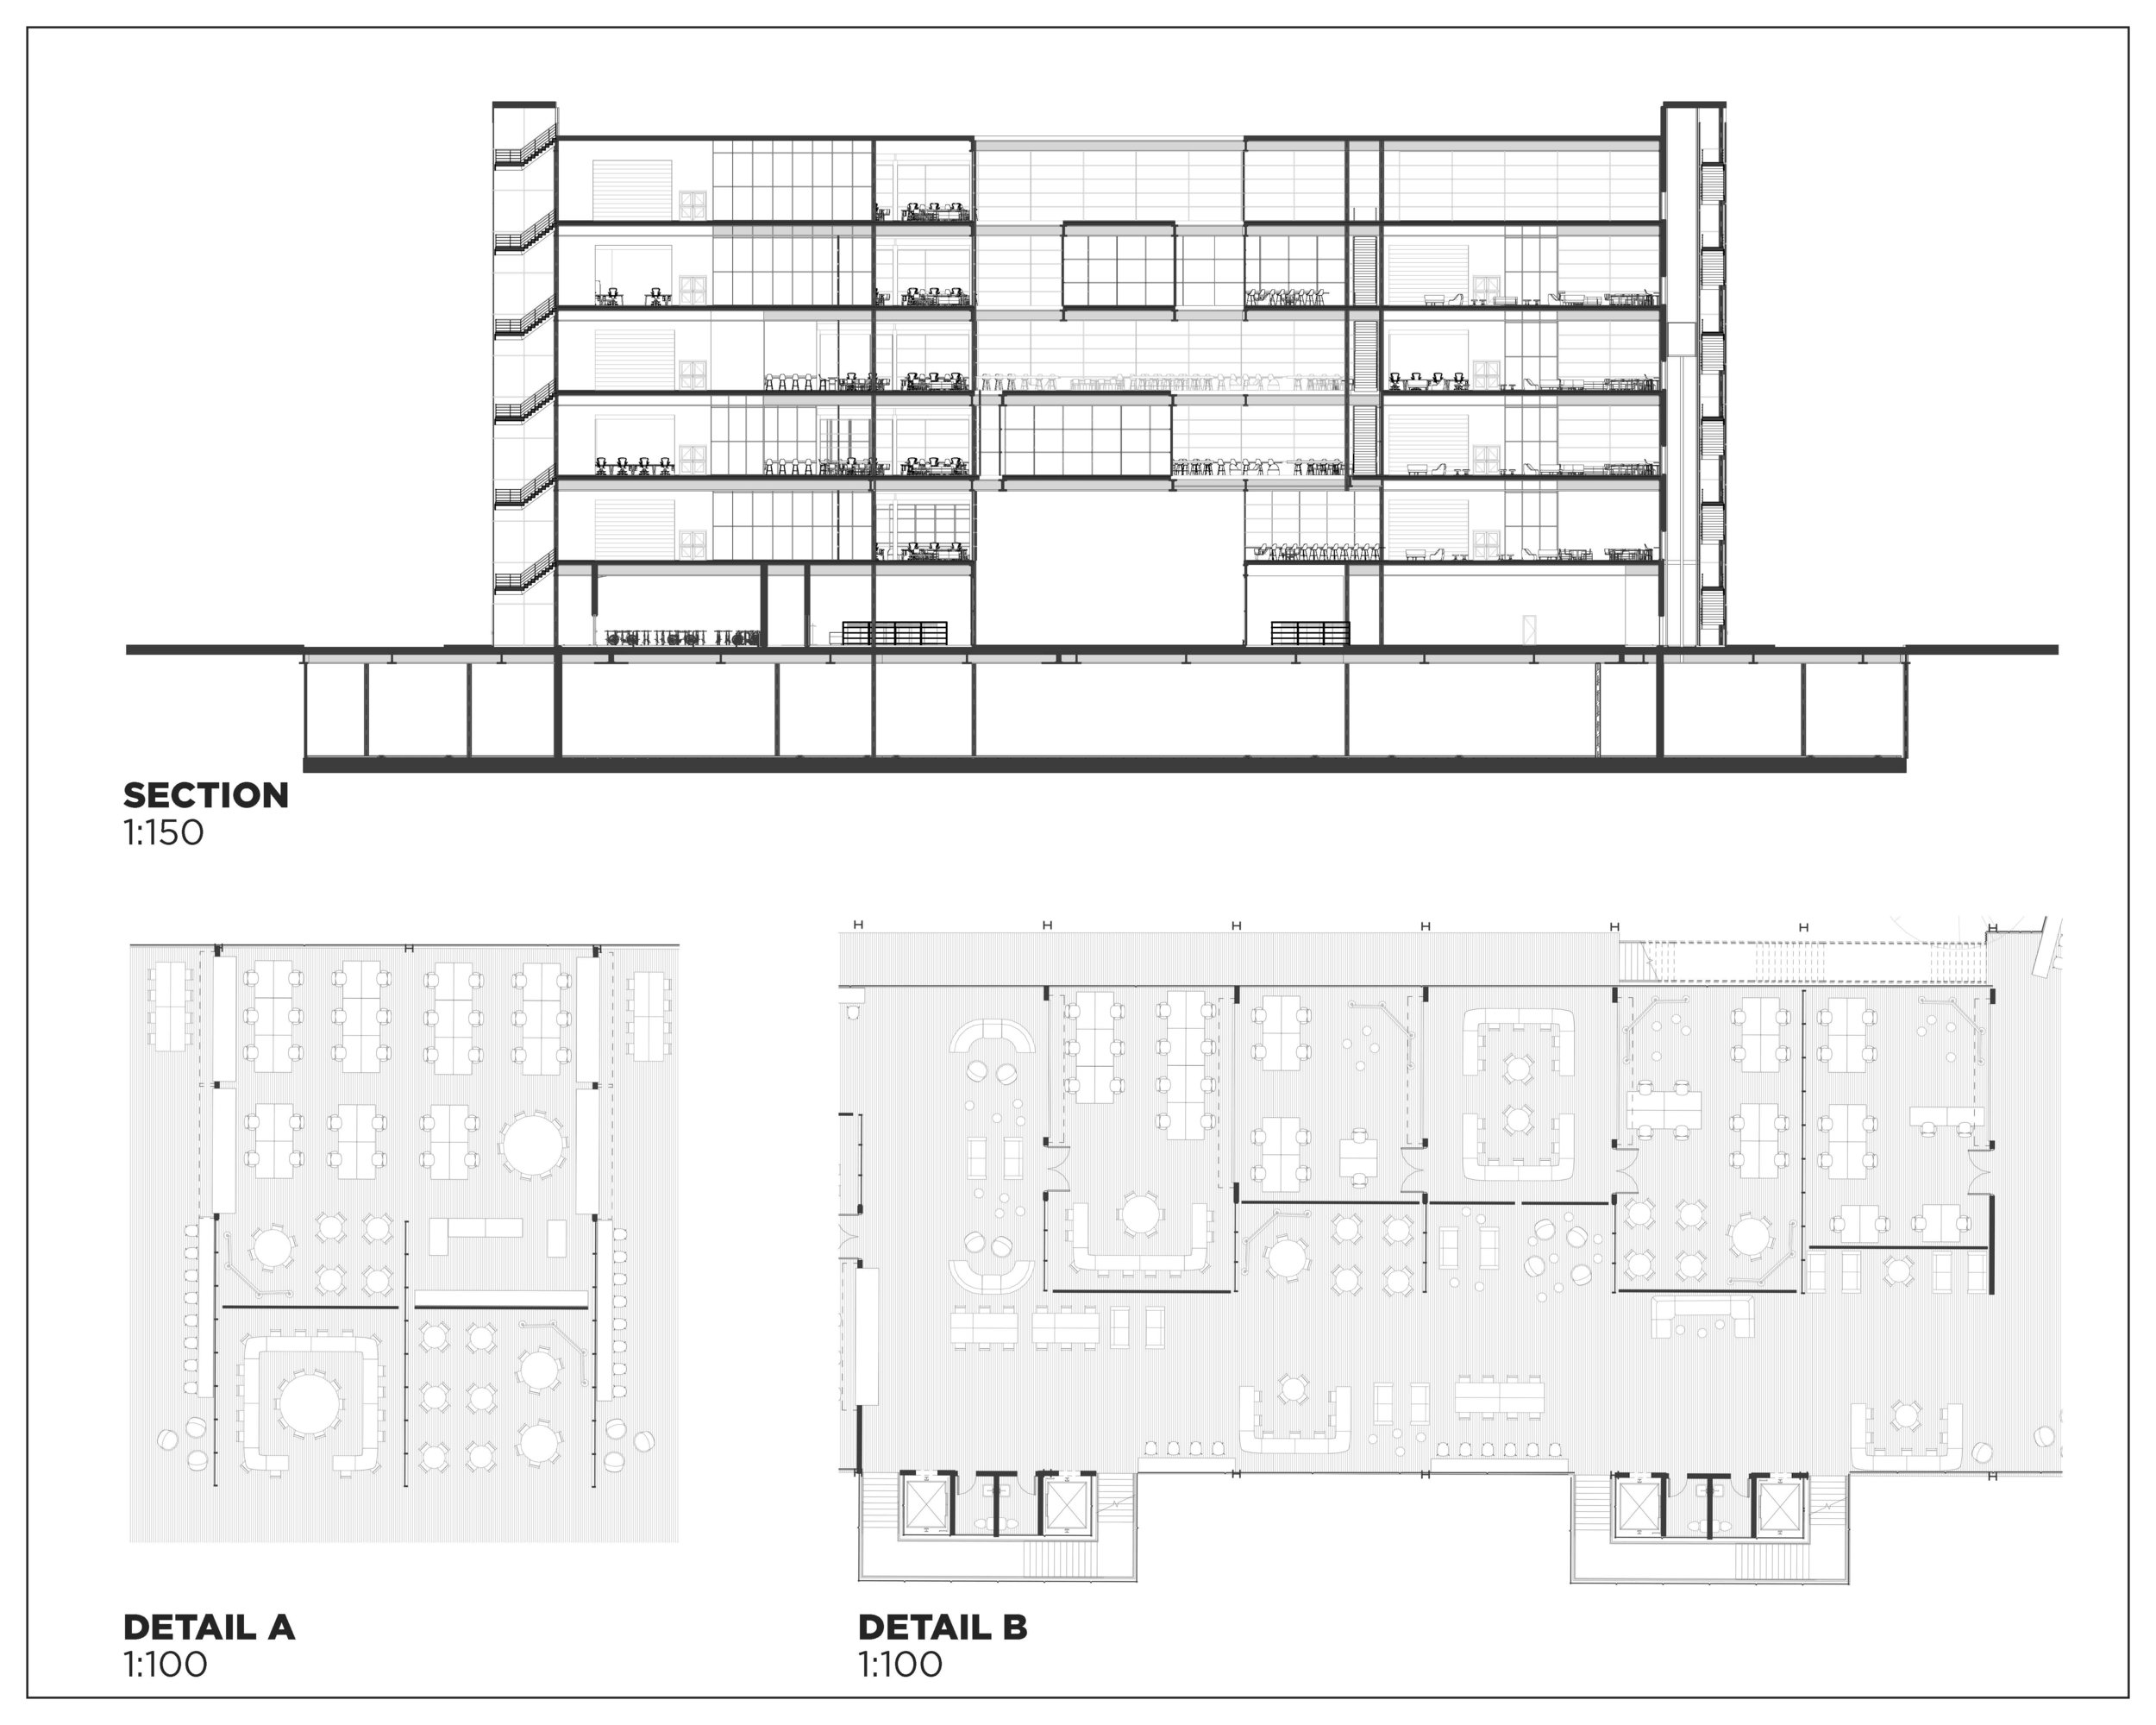 Transverse Section and 2nd Floor Plan Details.